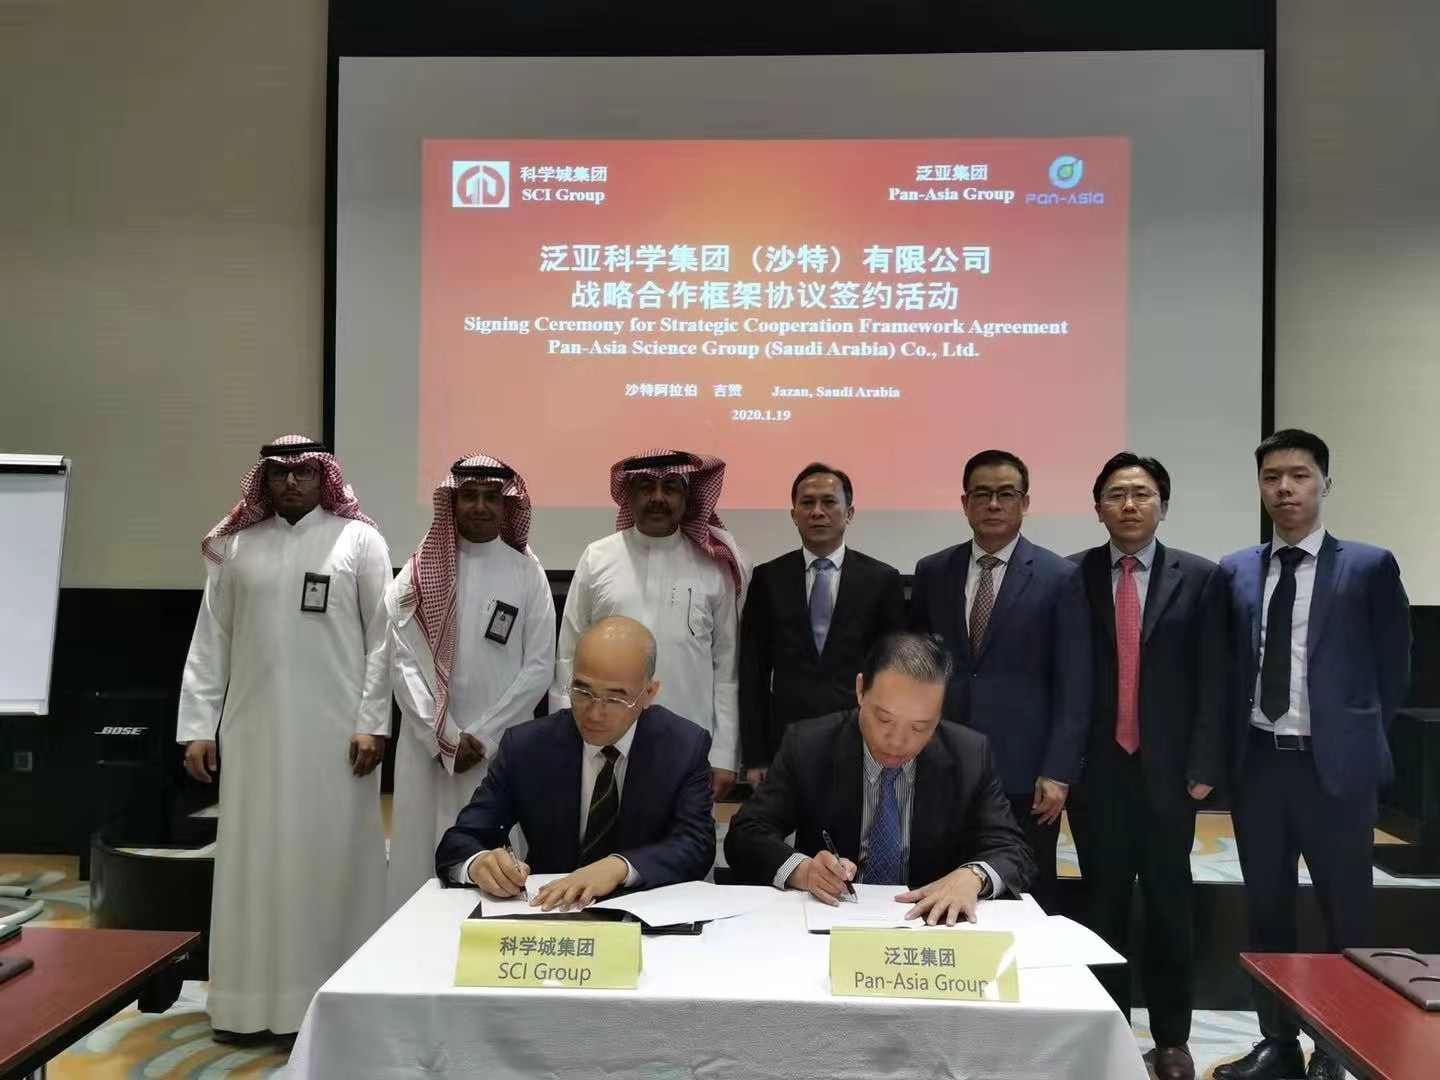 Pan-Asia and SCI Group Sign Strategic Framework Agreement